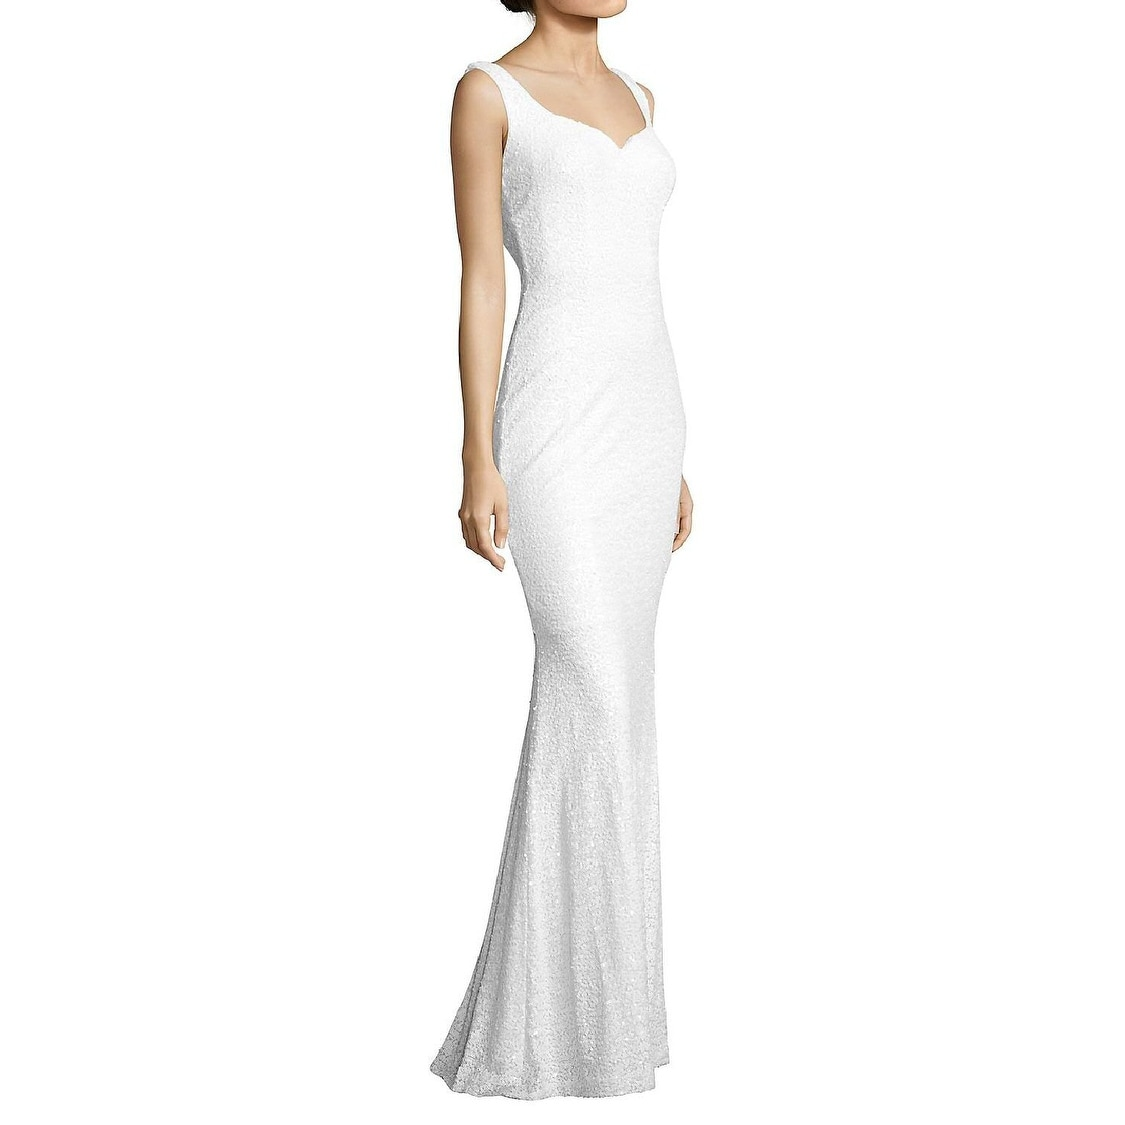 White Evening Gown Dresses